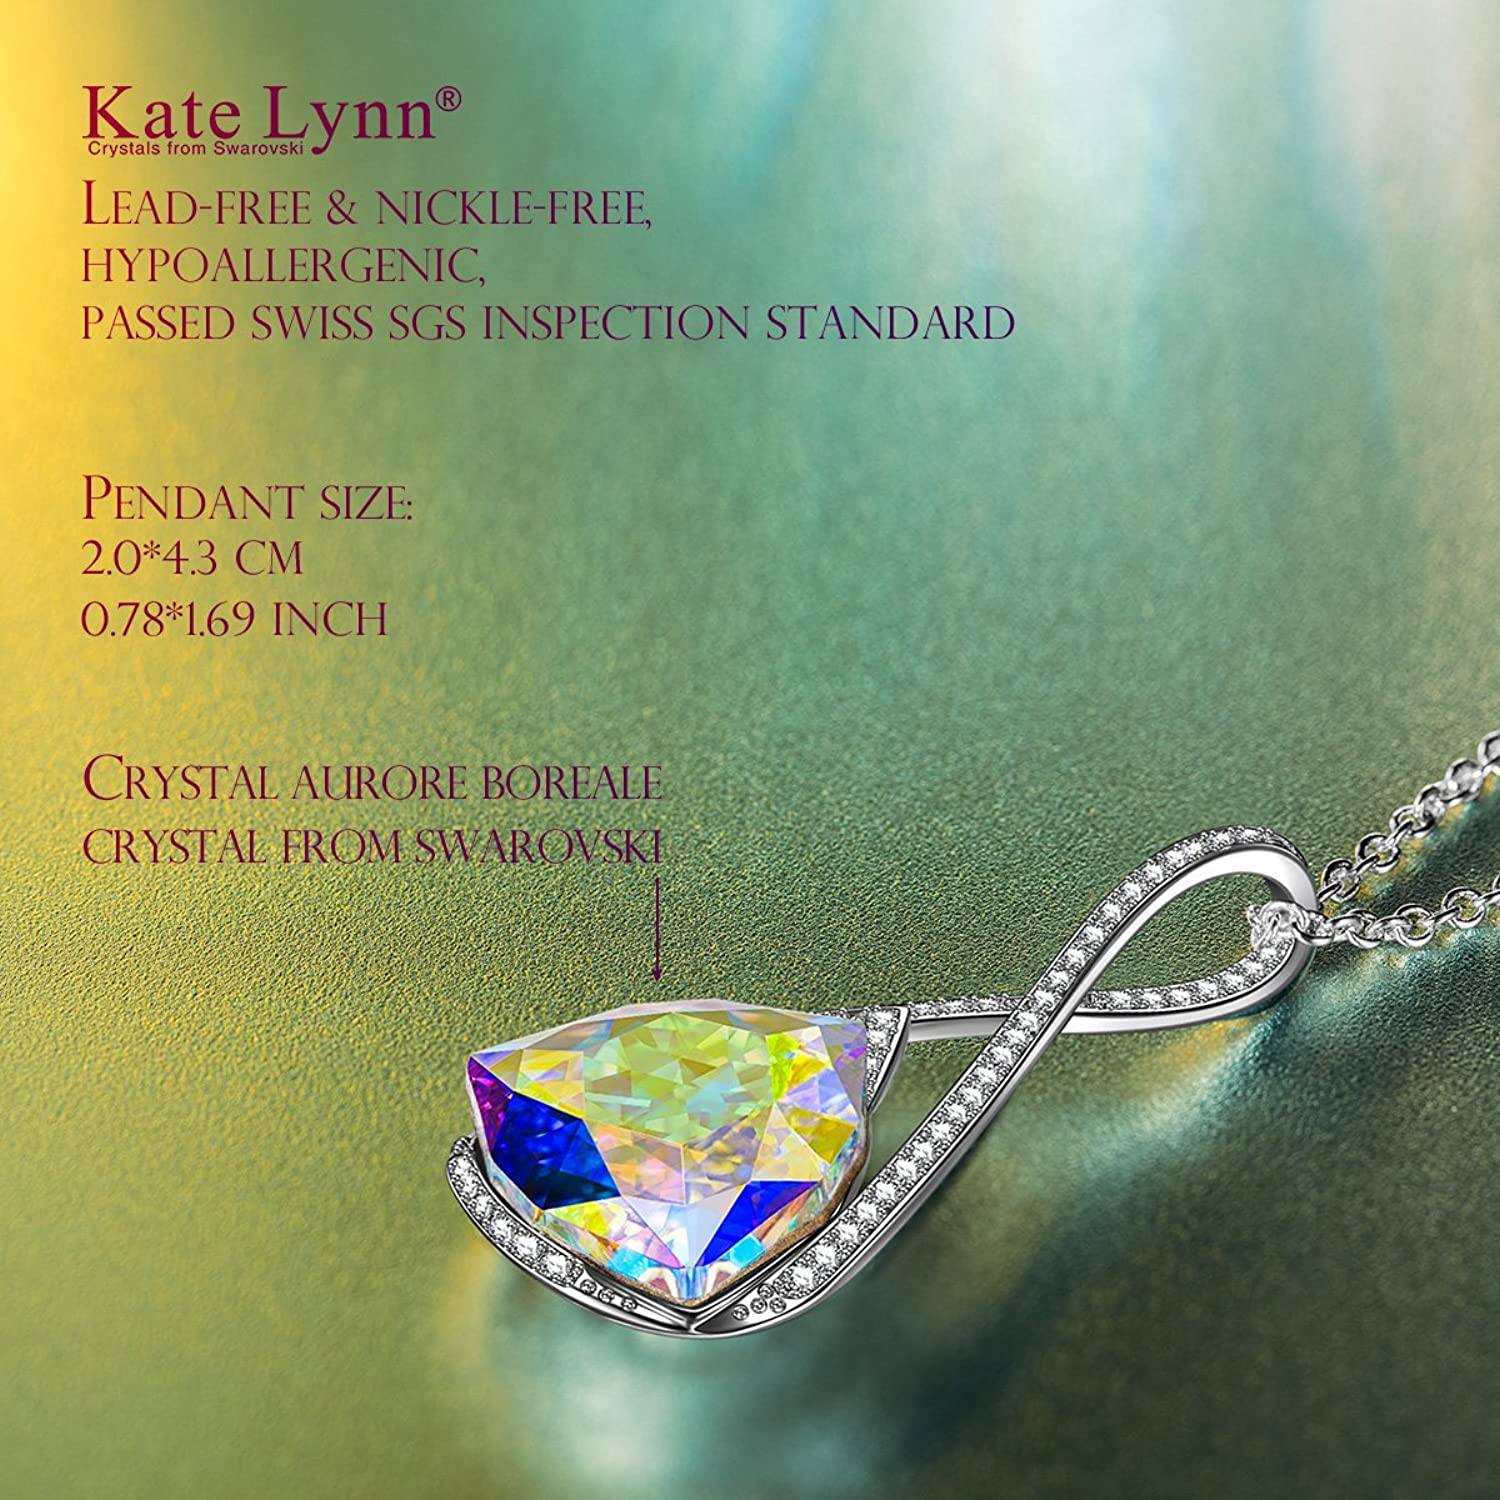 """Amazon.com: Necklace Jewelry Gifts for Women Girls Her Swarovski Crystal  KATE LYNN """"Encounter on Iceland"""" Pendants Necklace Christmas Gifts for  Women ..."""